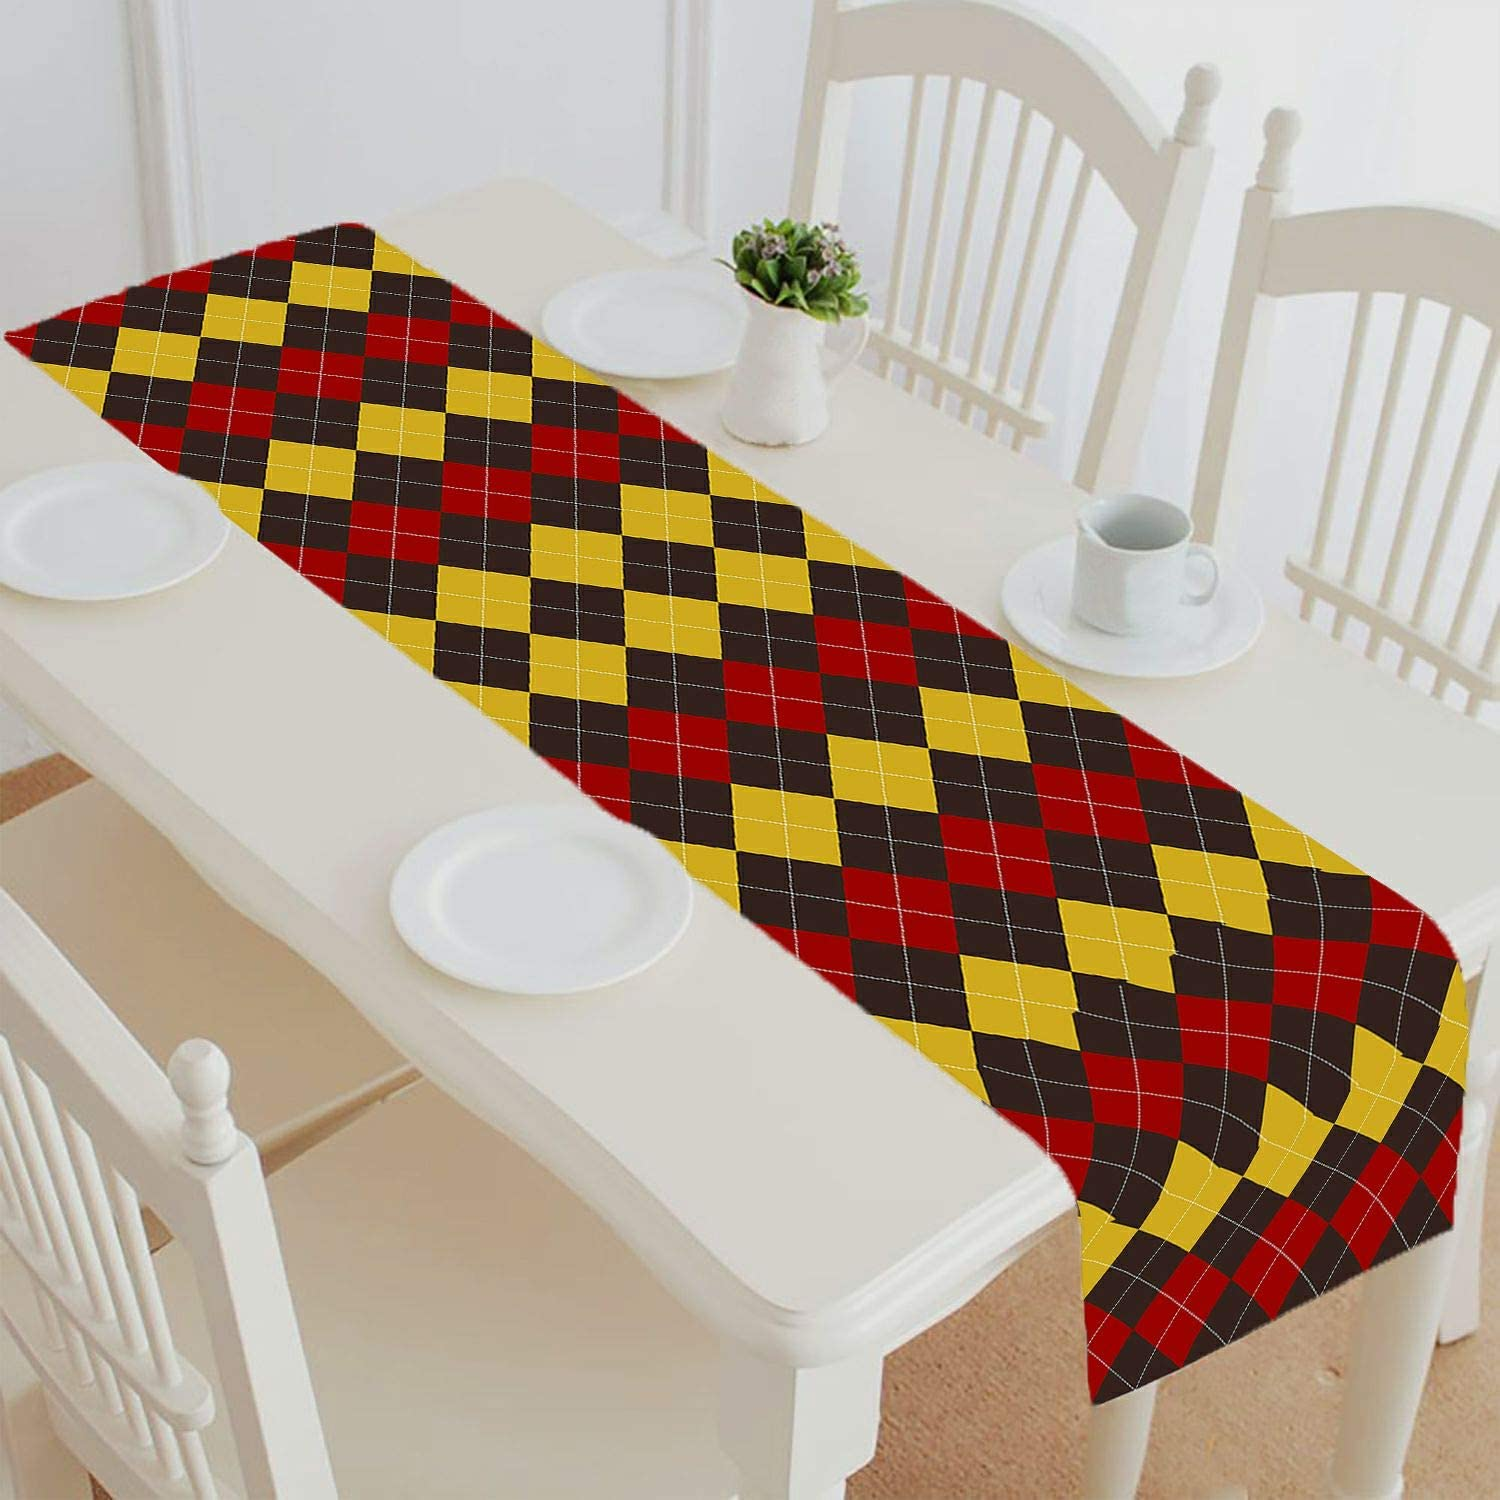 Abphqto Brown Red Yellow Argyle Table Runner Placemat Tablecloth For Home Decor Size 16x72 Inch Home Kitchen